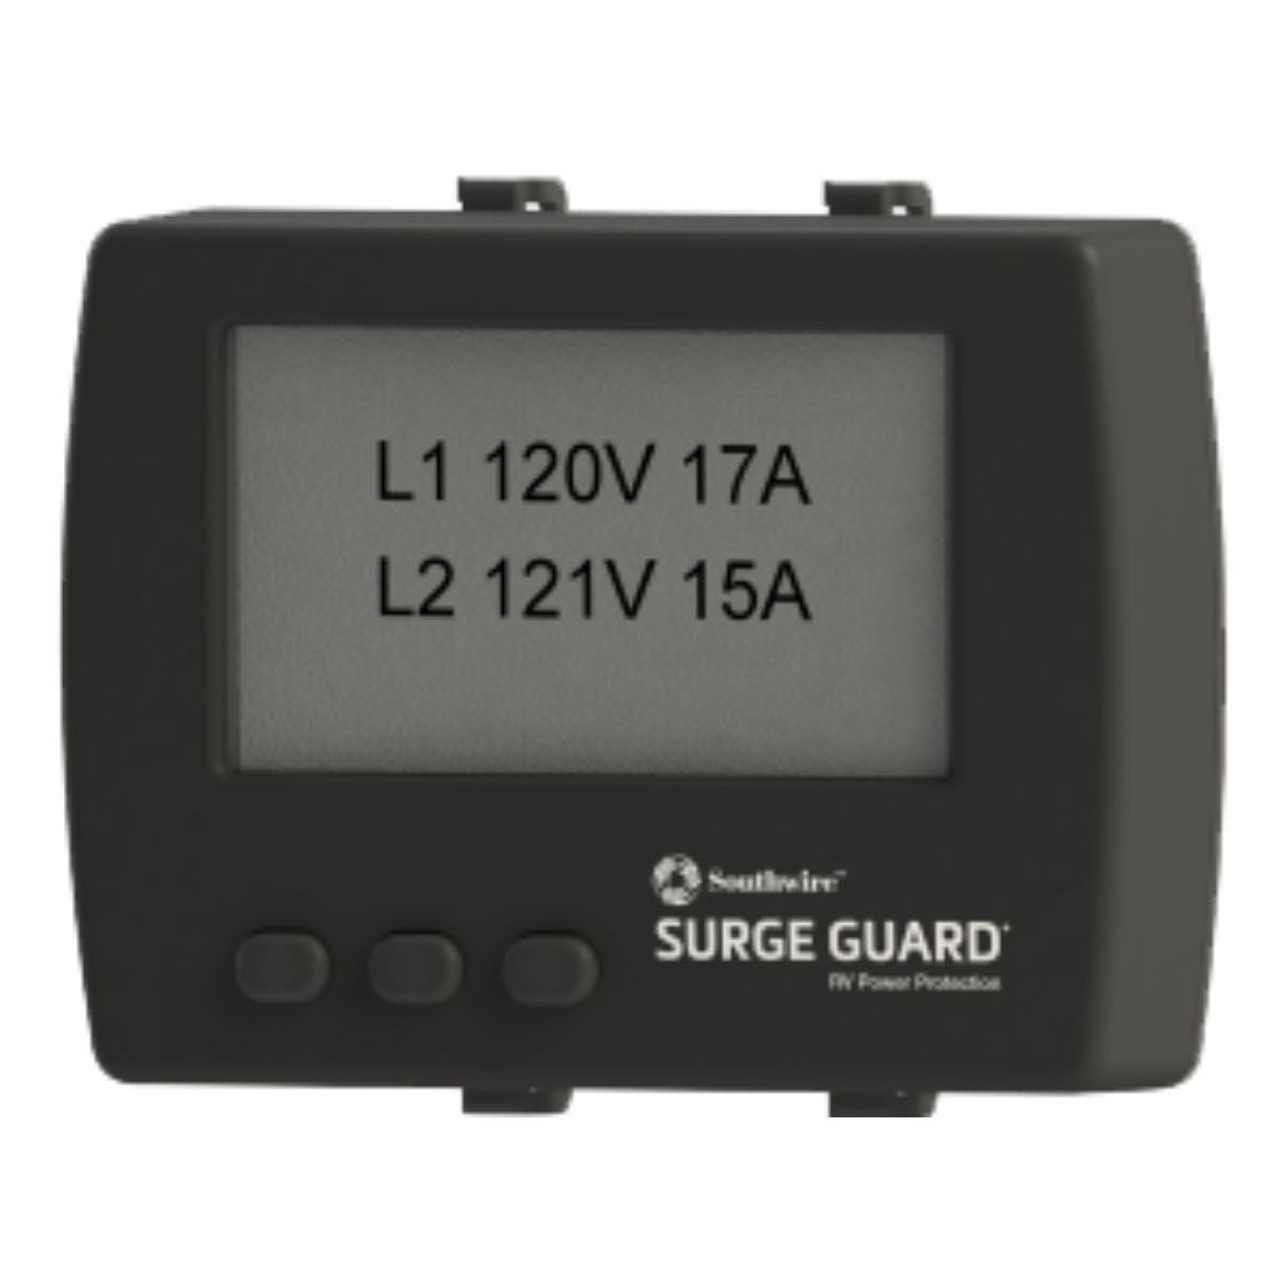 Surge Guard 40301 Wireless LCD Display for 34931 / 34951 Portable Units